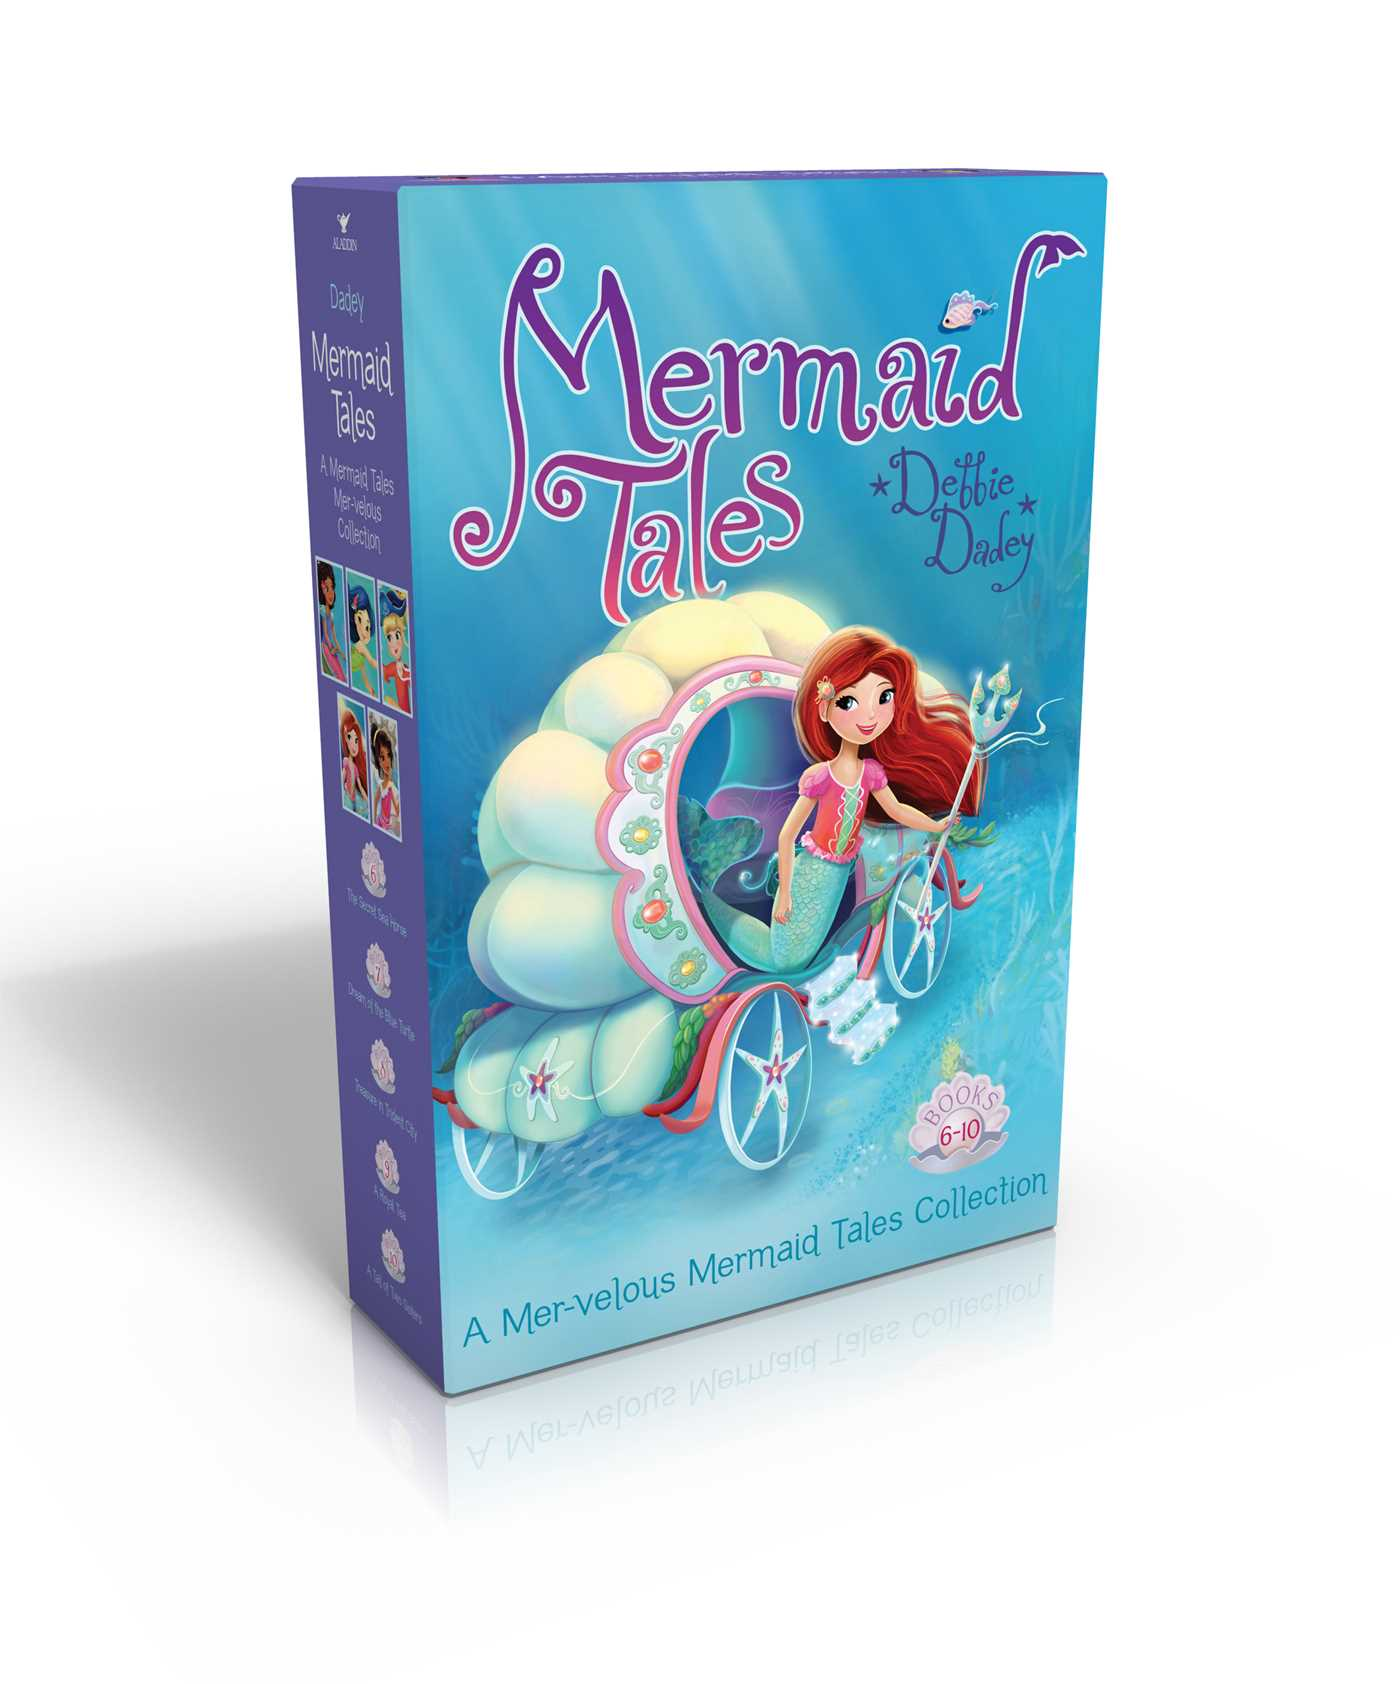 Mermaid tales mer velous collection books 6 10 9781481425667 hr